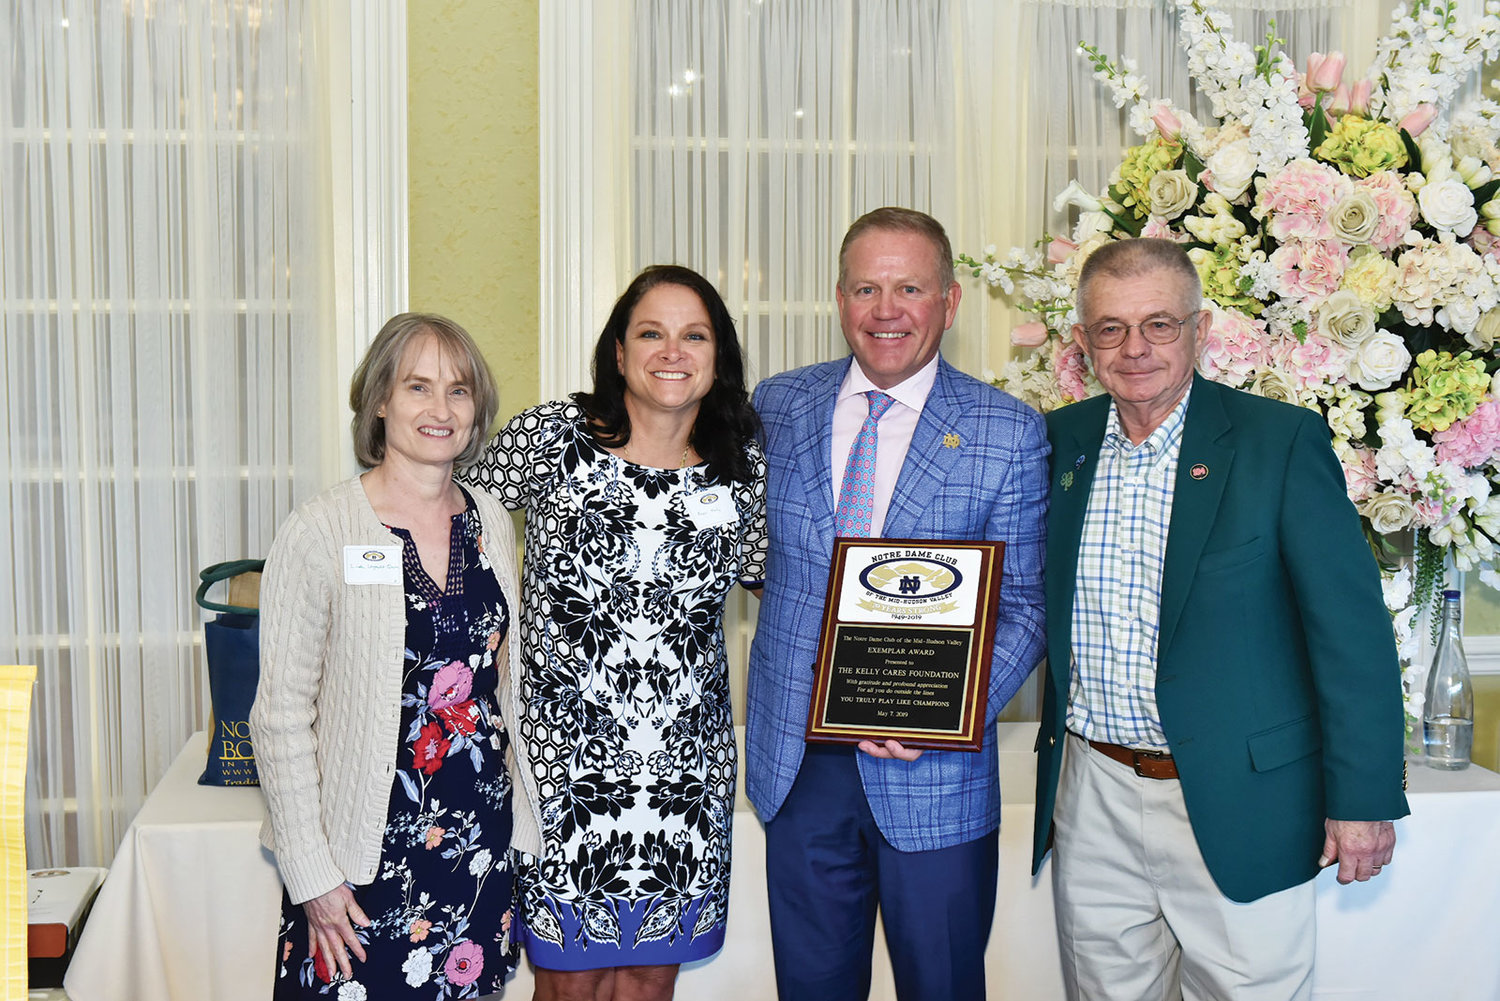 University of Notre Dame football coach Brian Kelly and his wife, Paqui, were presented with the Notre Dame Club of the Mid-Hudson Valley's Exemplar Award by club co-presidents Linda Legault Quinn, left, and Les McCarthy, right, at the 2019 Universal Notre Dame Celebration at the Grandview in Poughkeepsie May 7.